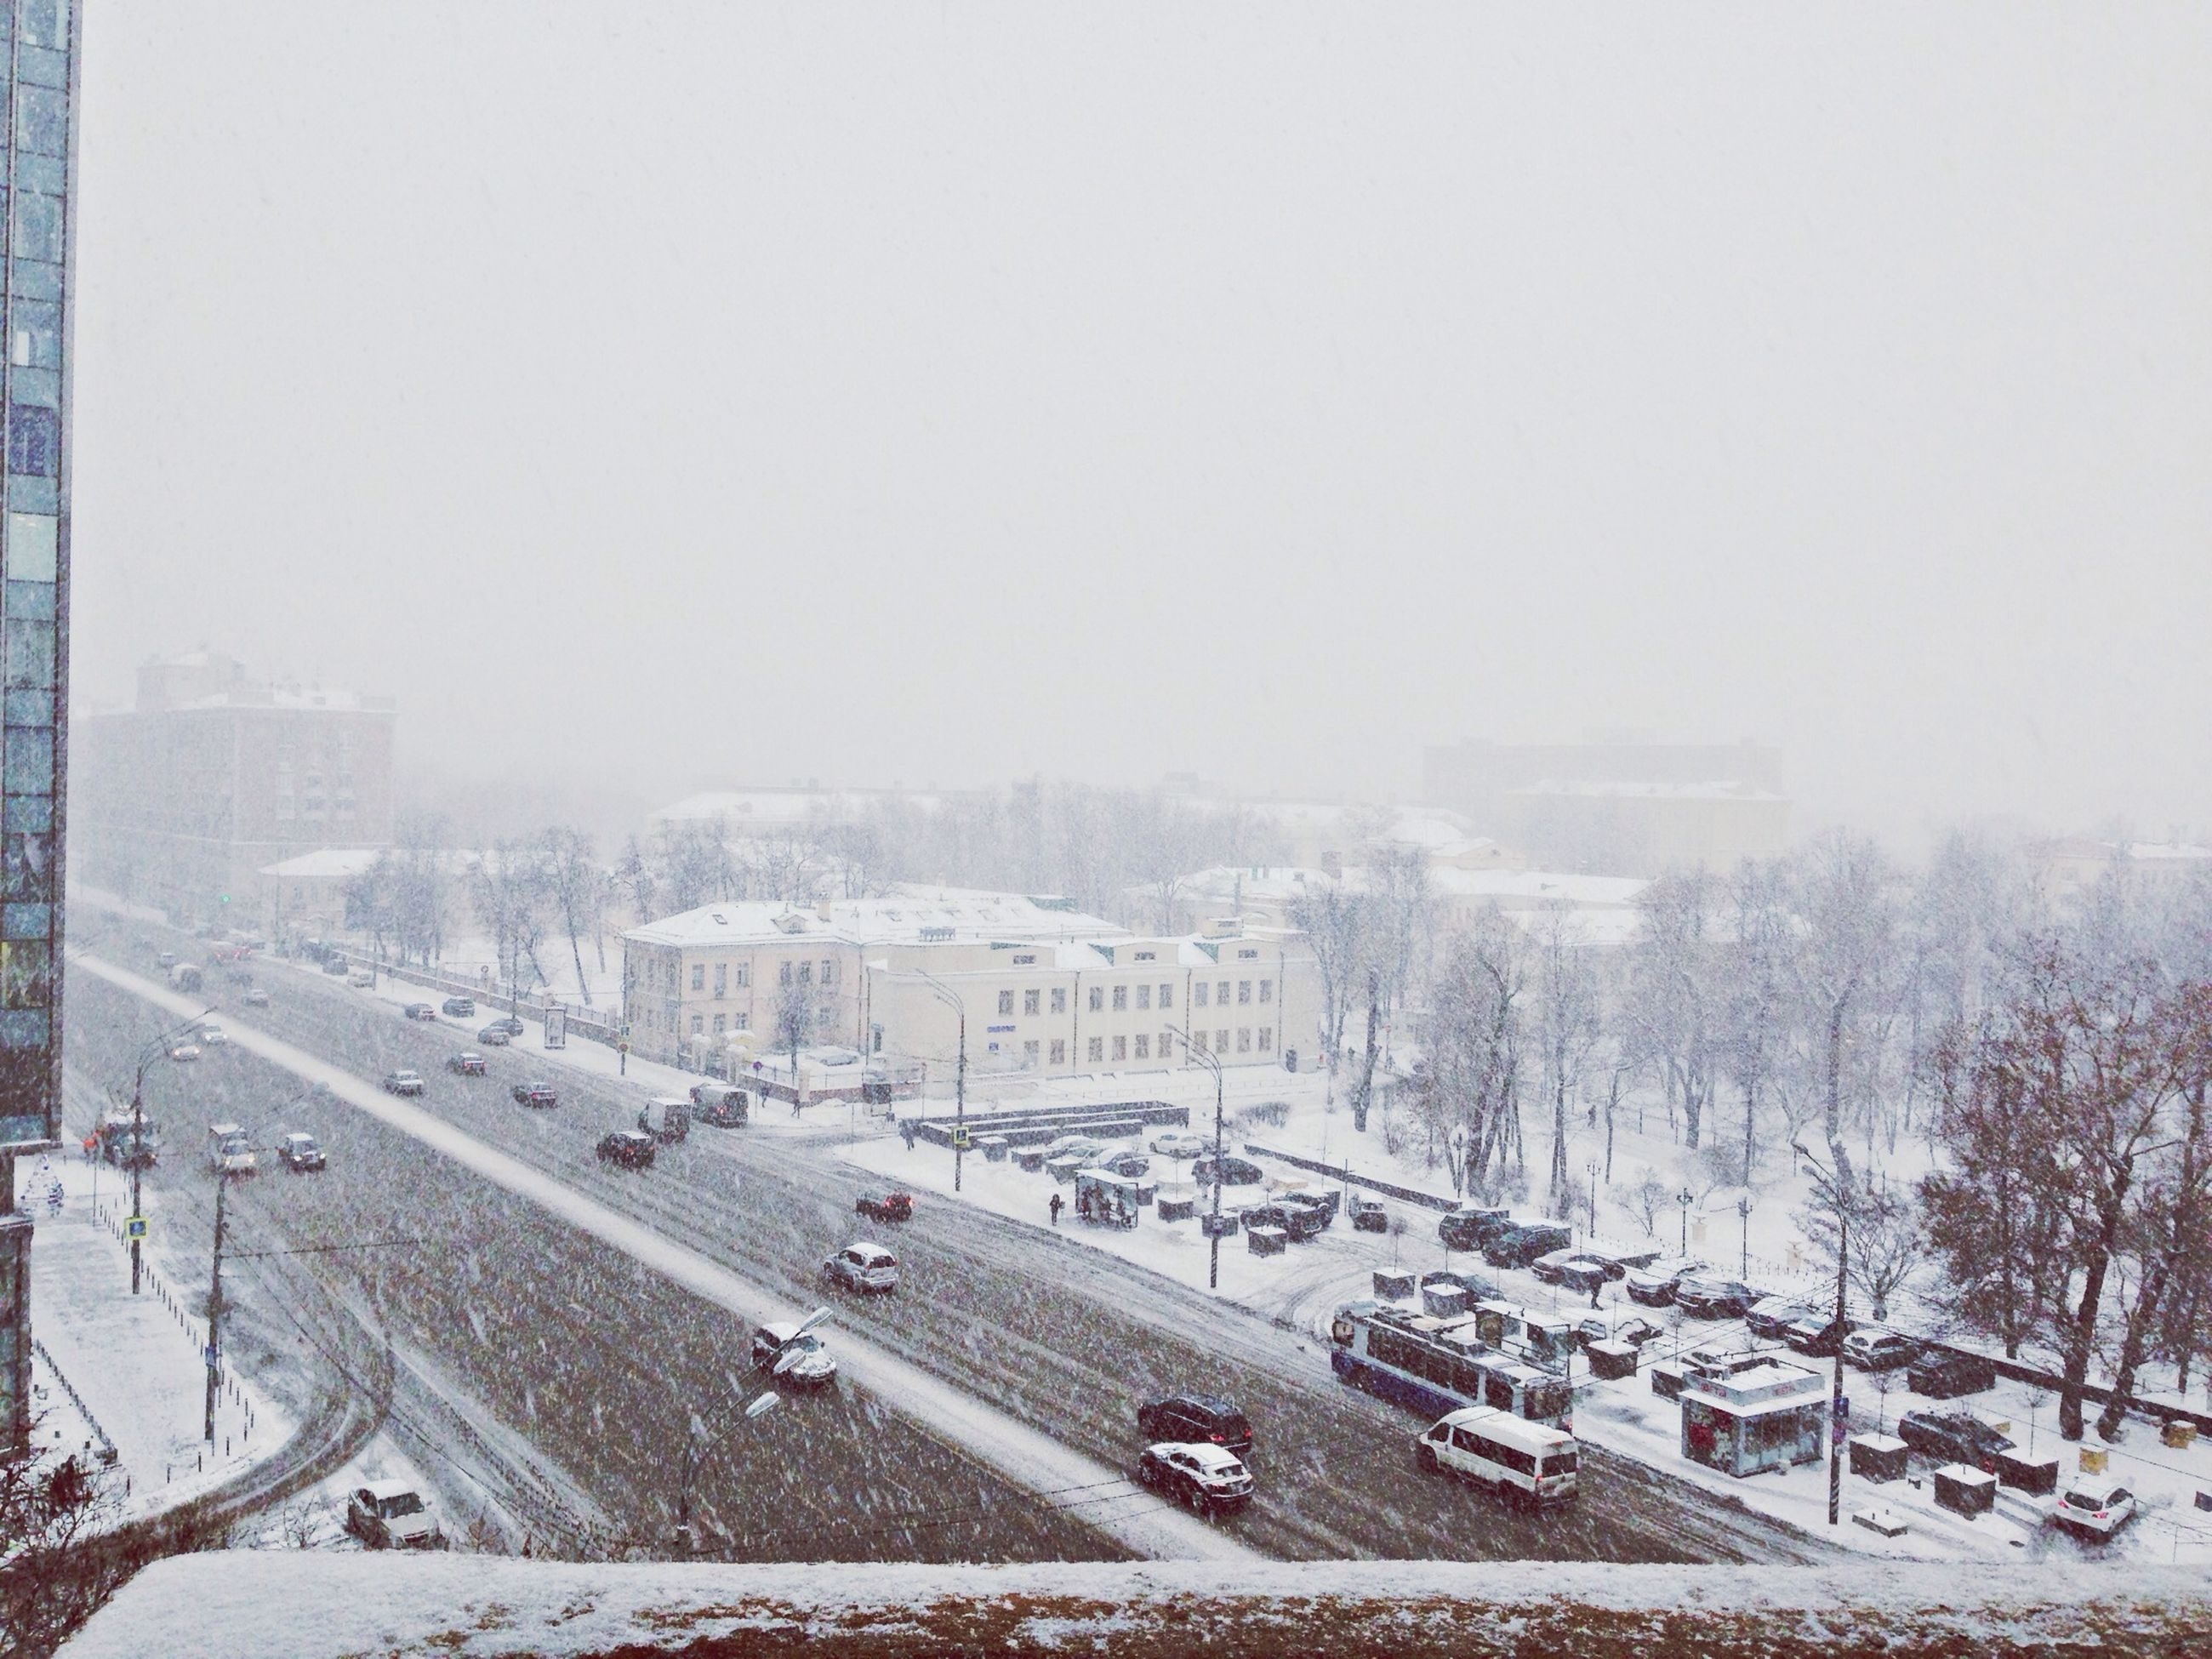 winter, snow, cold temperature, transportation, building exterior, season, architecture, clear sky, built structure, high angle view, weather, car, copy space, land vehicle, road, city, mode of transport, covering, street, tree